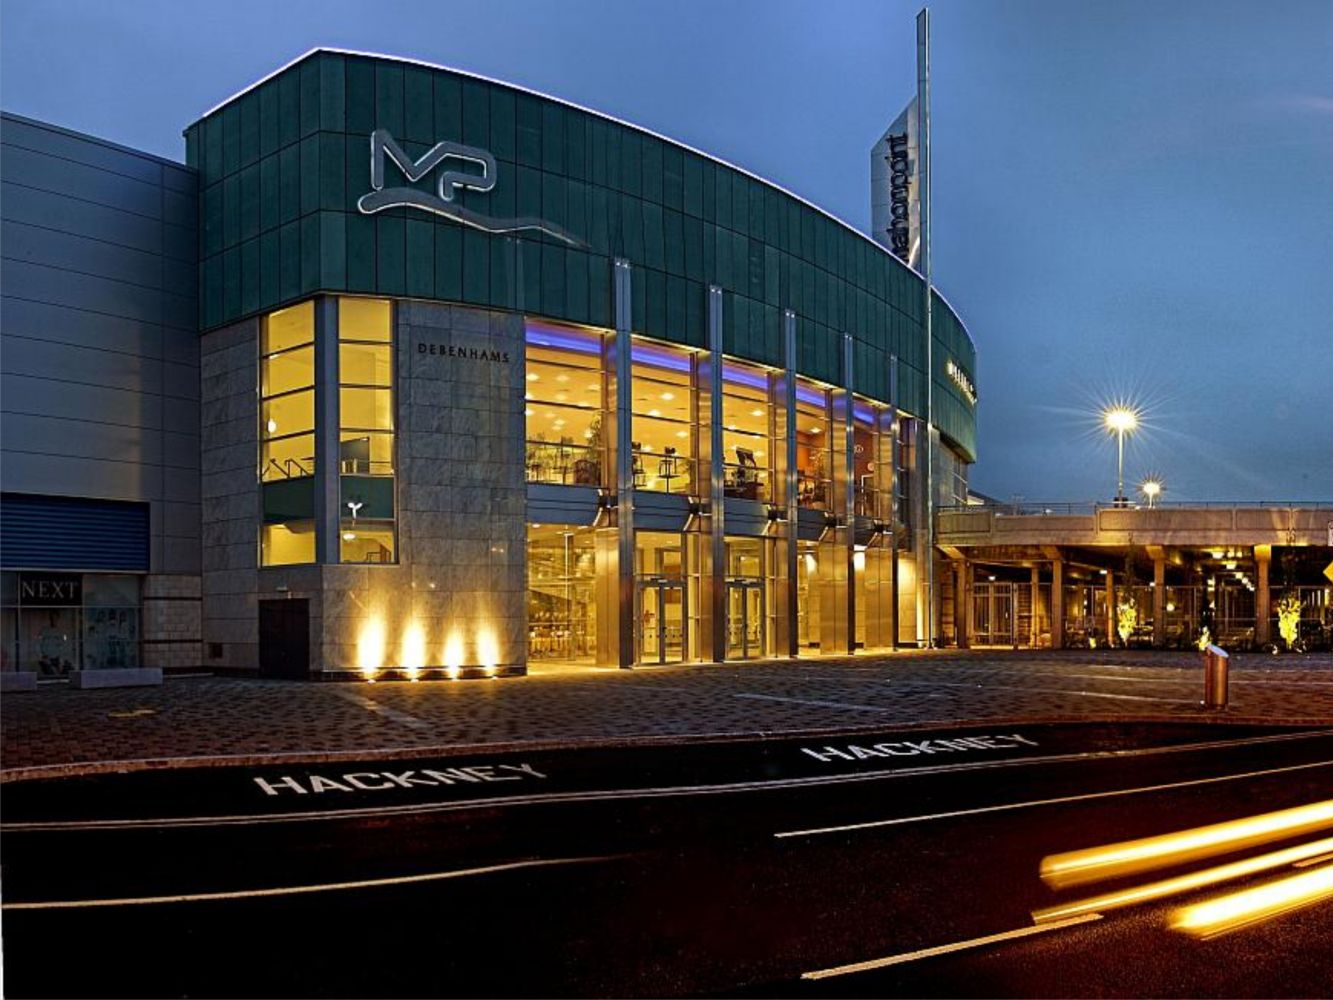 Mahon Cinema